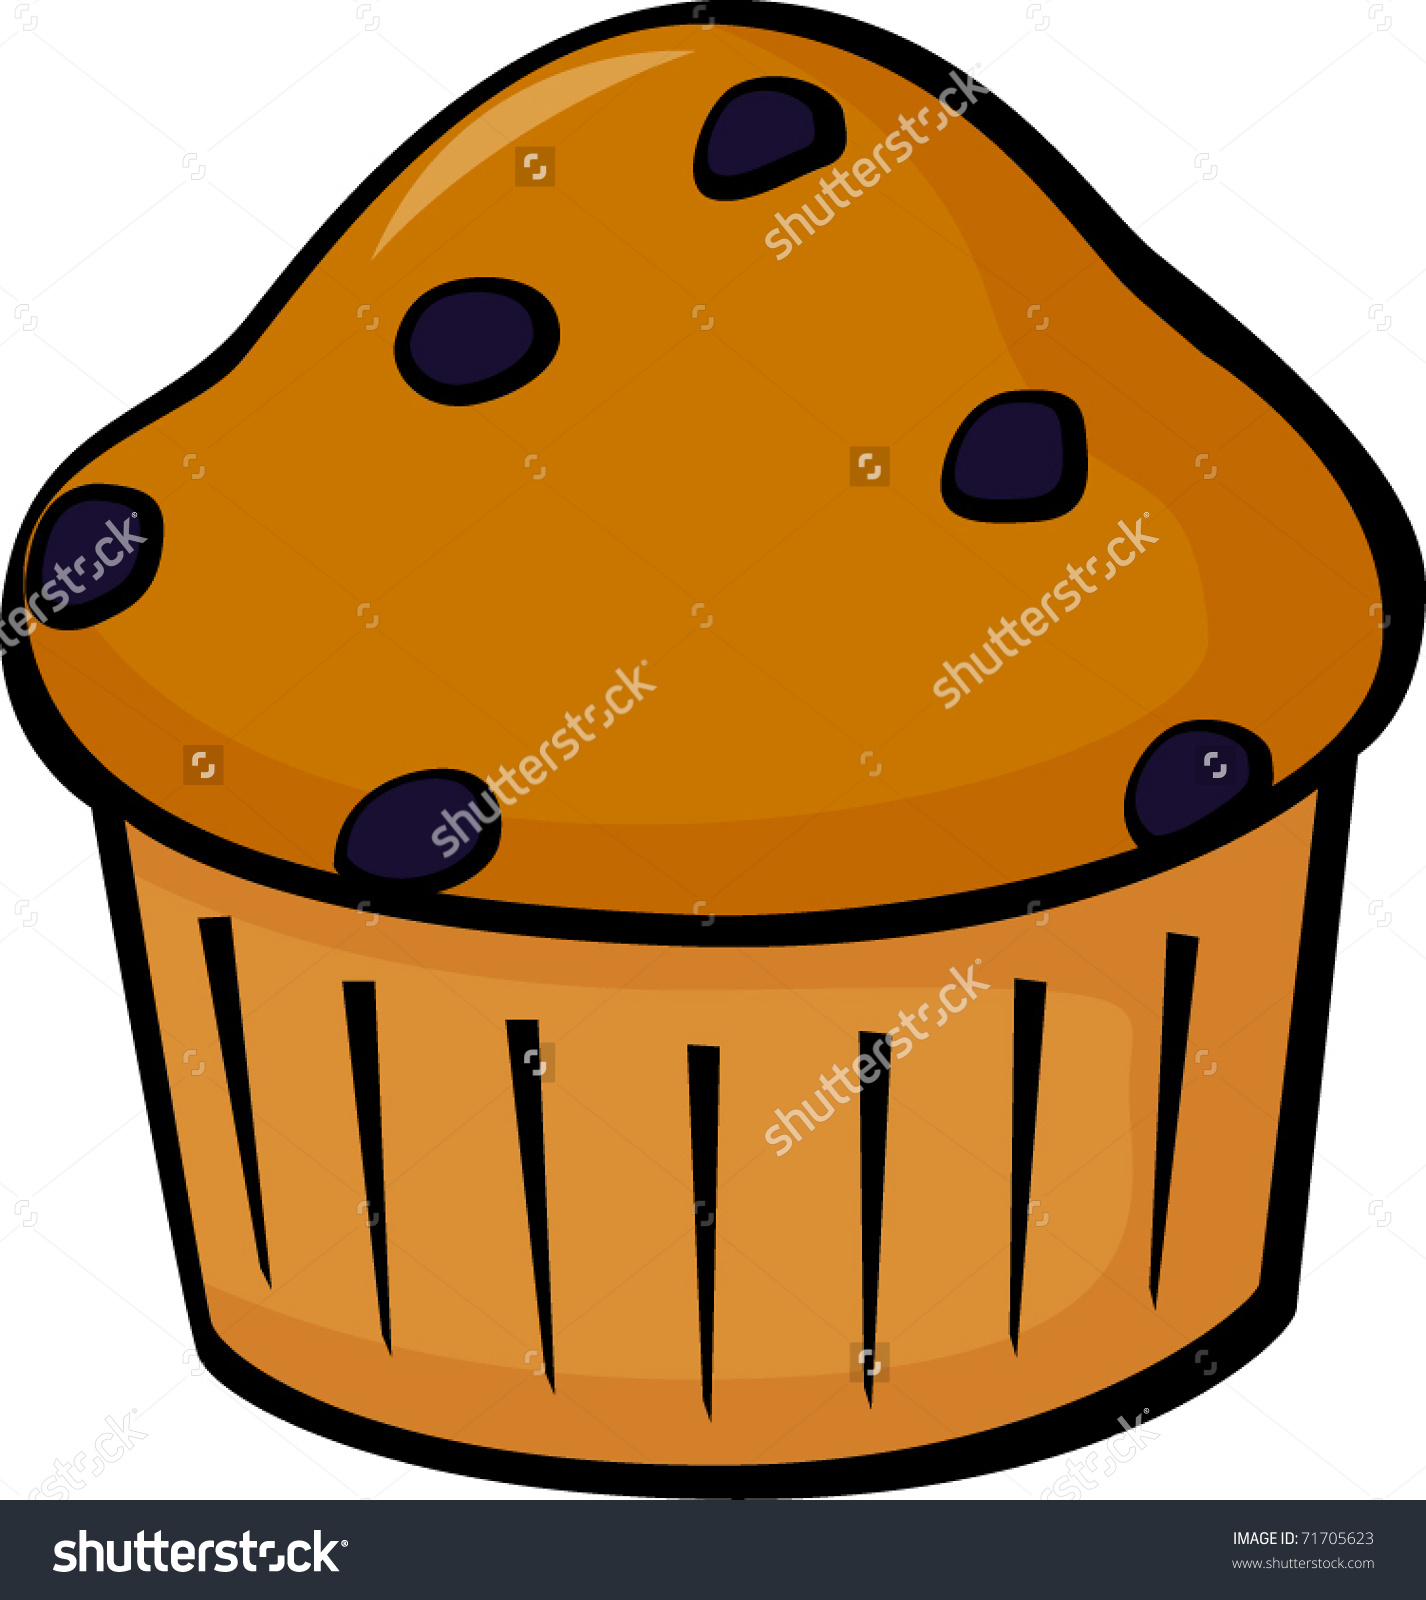 1426x1600 Blueberry Muffin Clipart One Blueberry